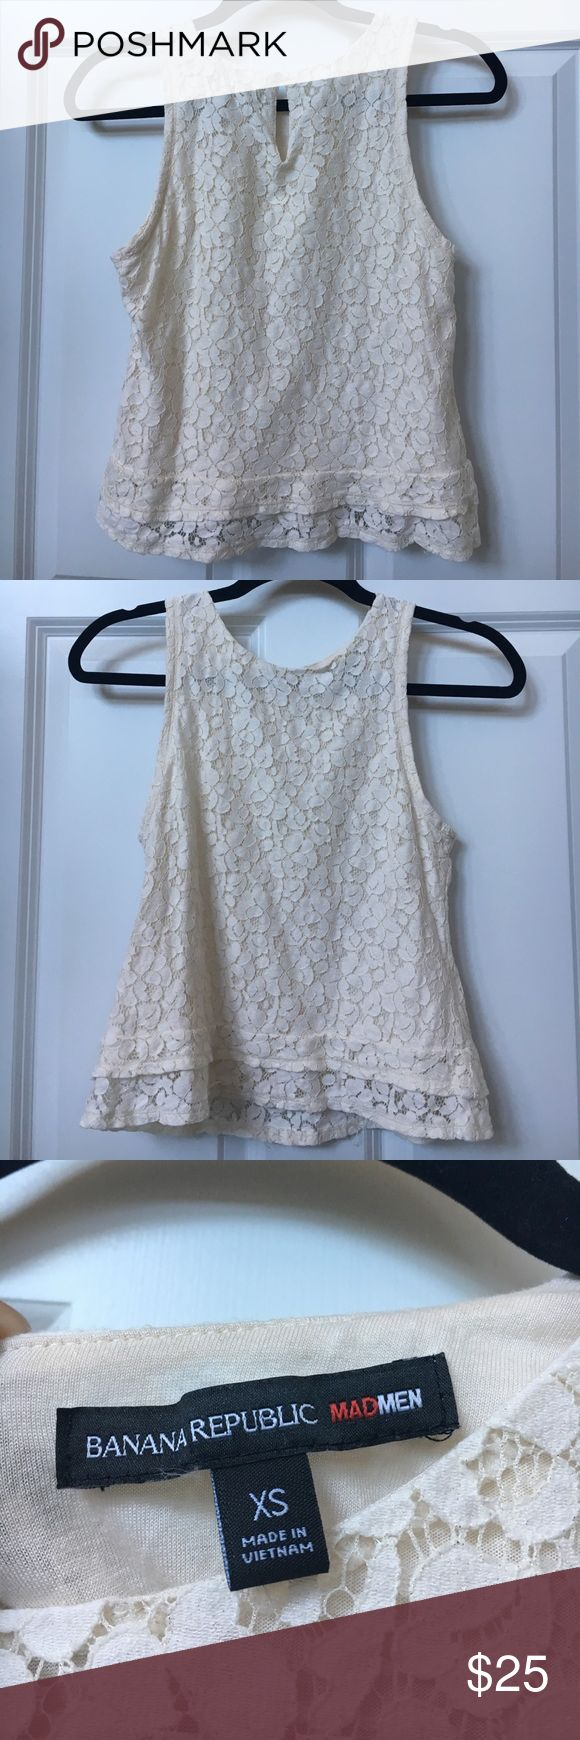 Cream colored lace tank top. Banana Republic From the Banana Republic Mad Men collection. Size XS  Shoulder to shoulder: 11 inches.  Bust: 12 inches Tops Tank Tops